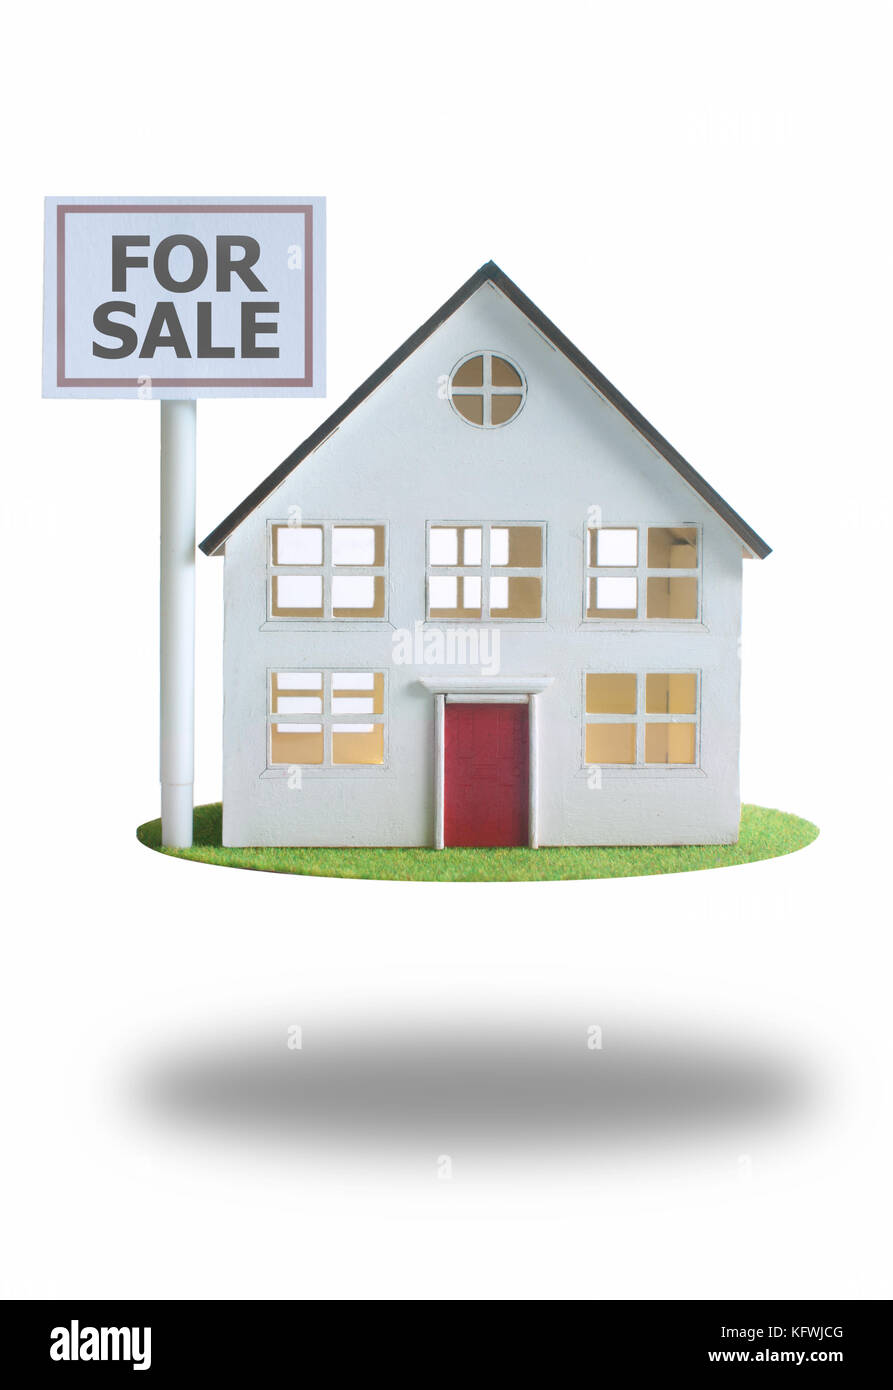 House for sale floating on grass platform - Stock Image